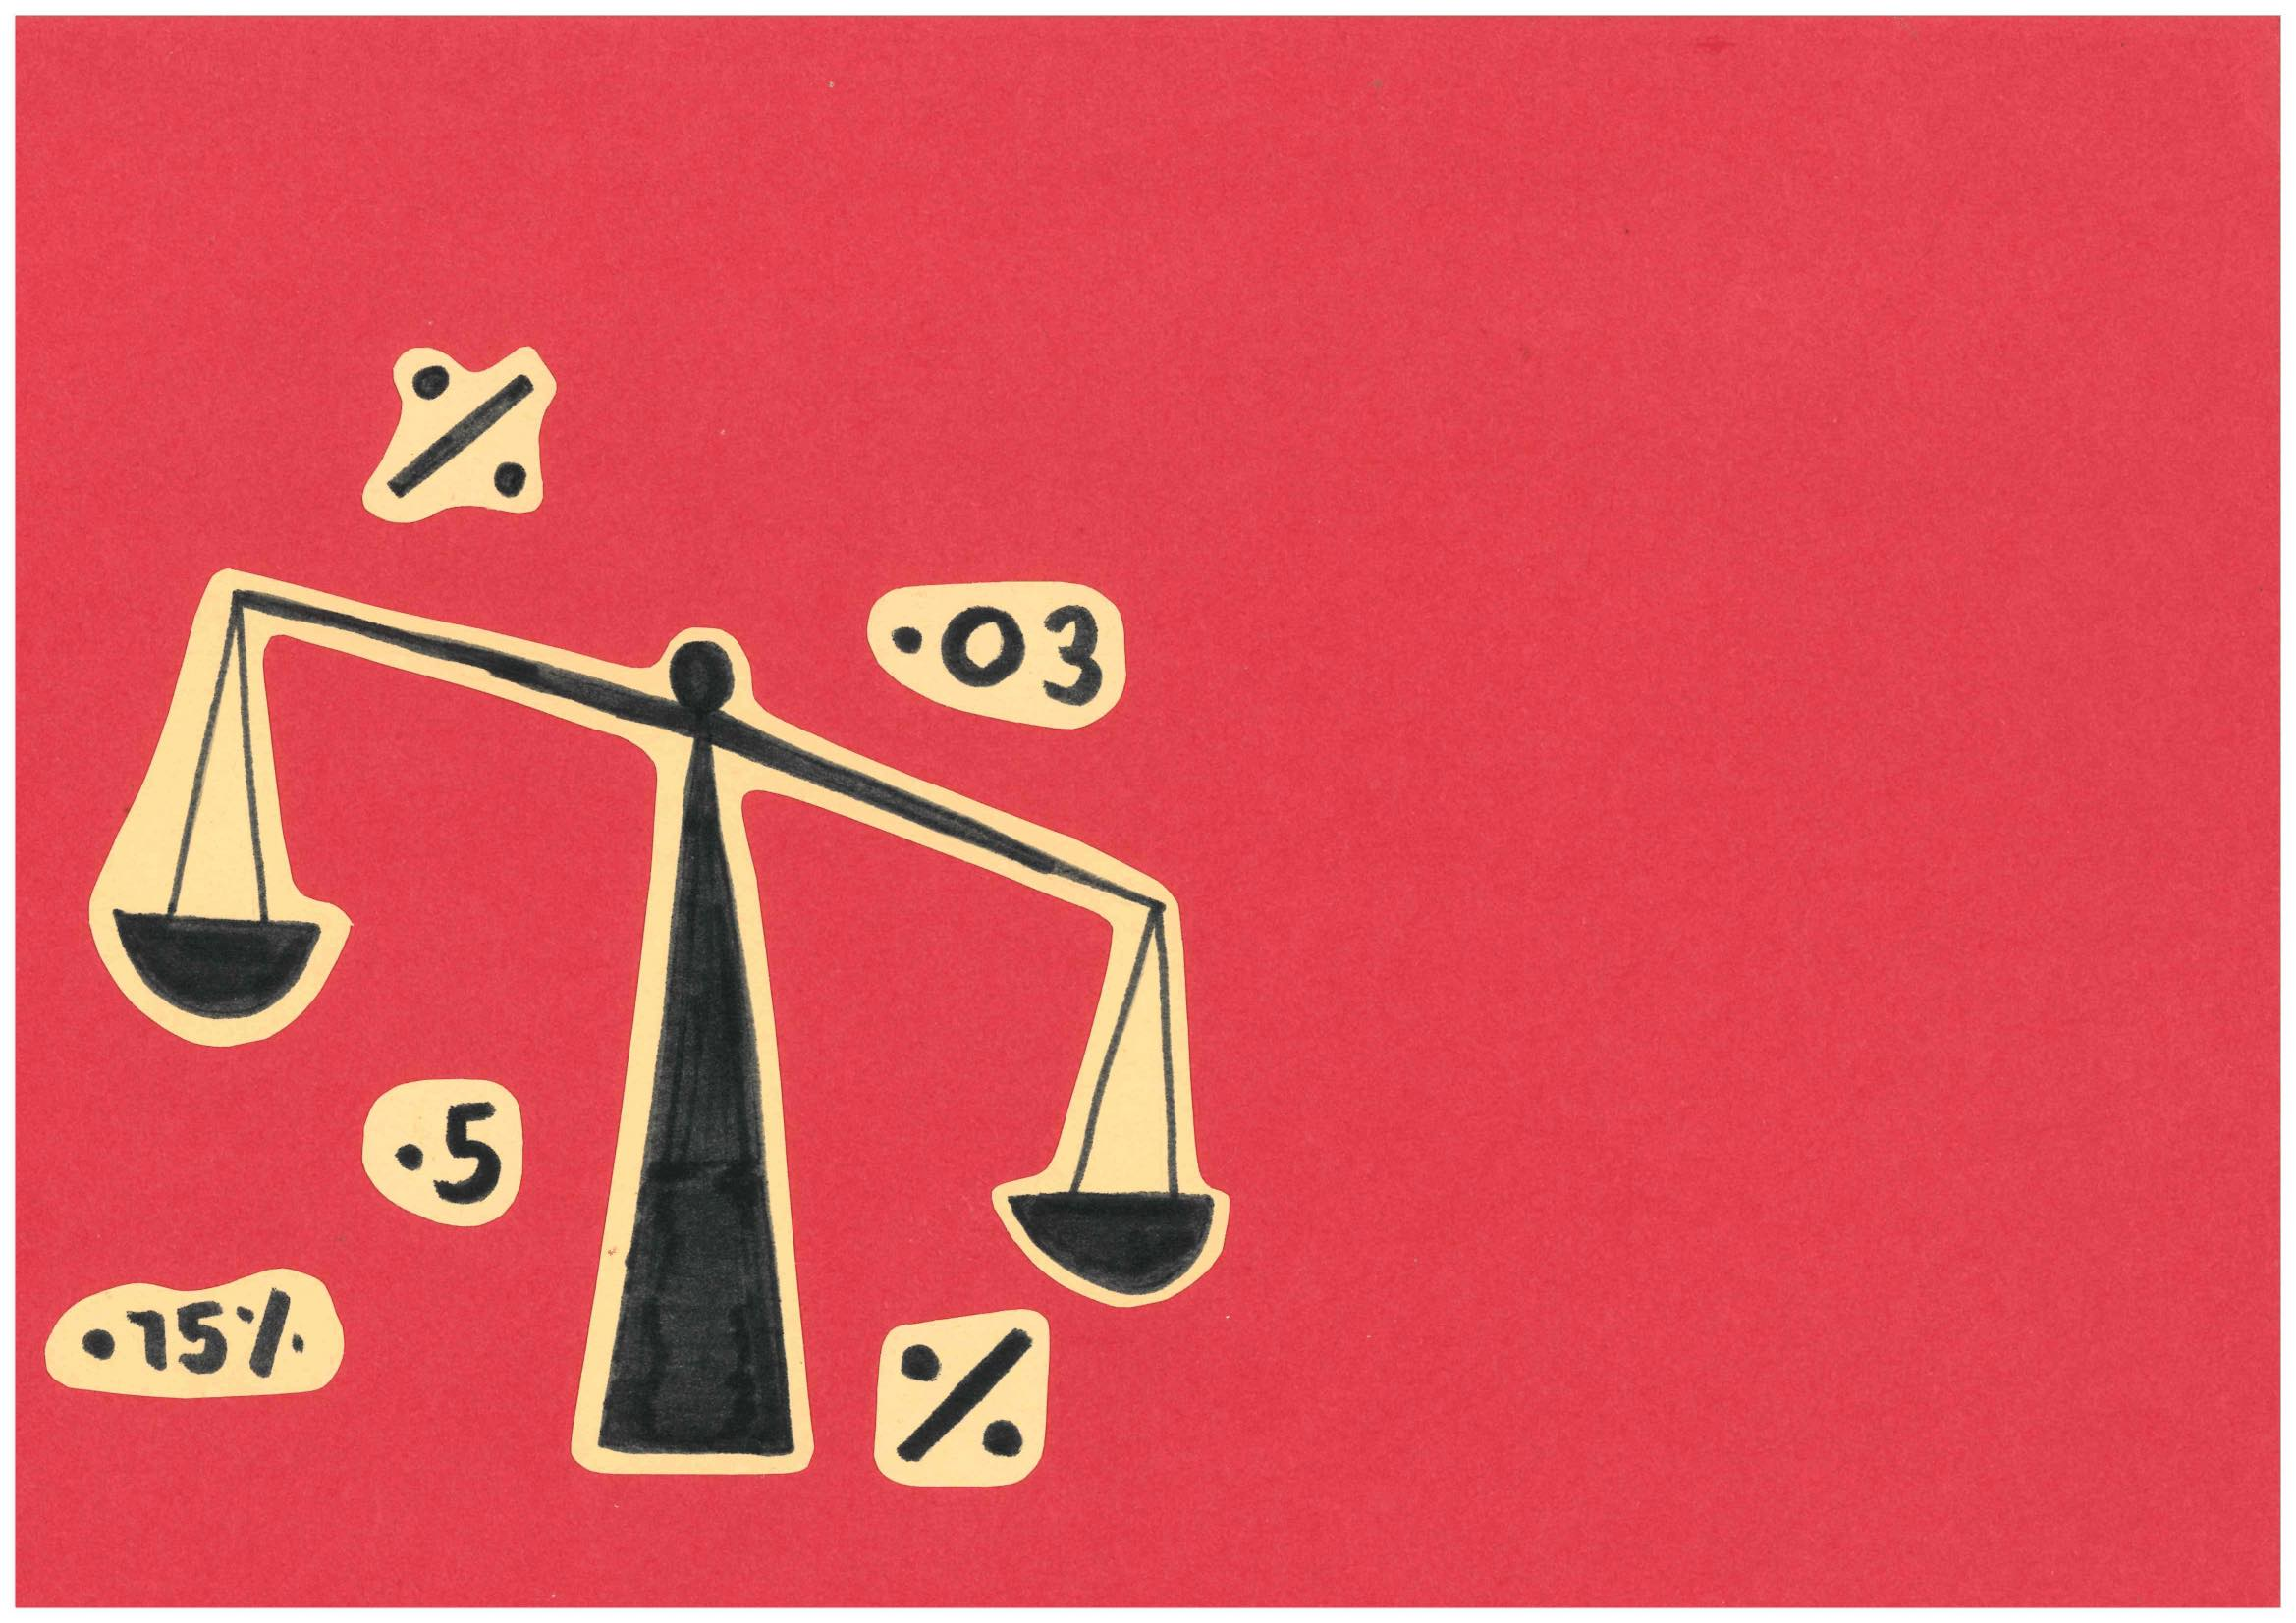 An illustration of a weighing scale is surrounded by statistics, against a red background.